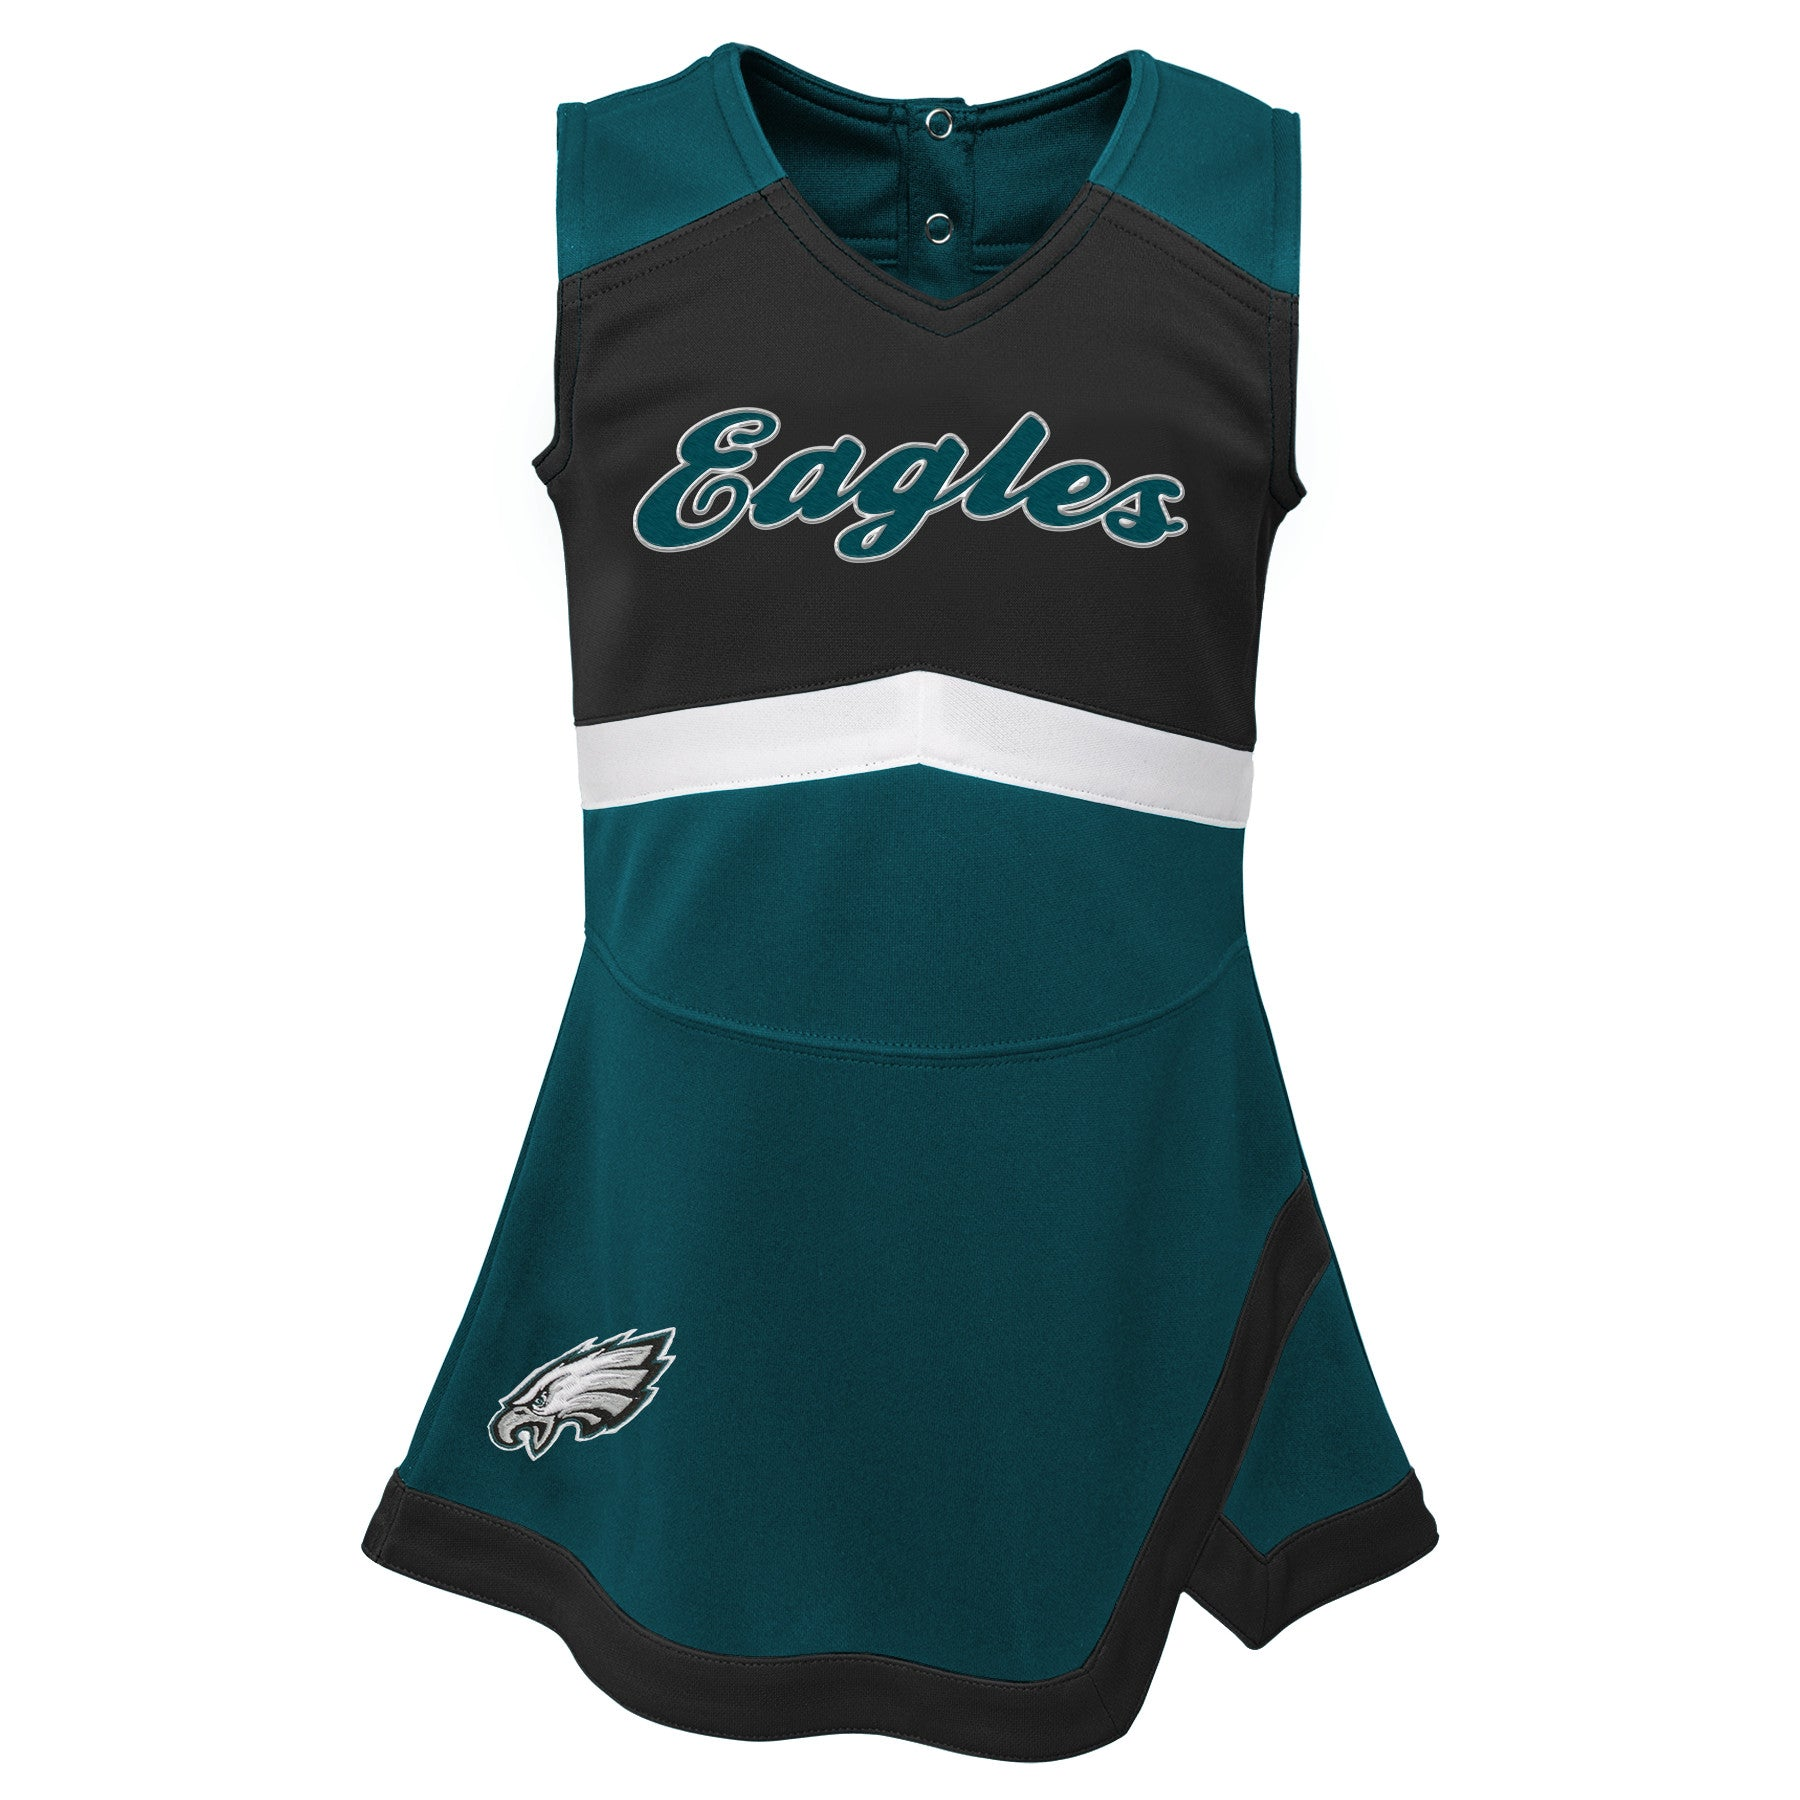 separation shoes df1d3 3bdd1 Philadelphia Eagles Infant Cheerleader Dress